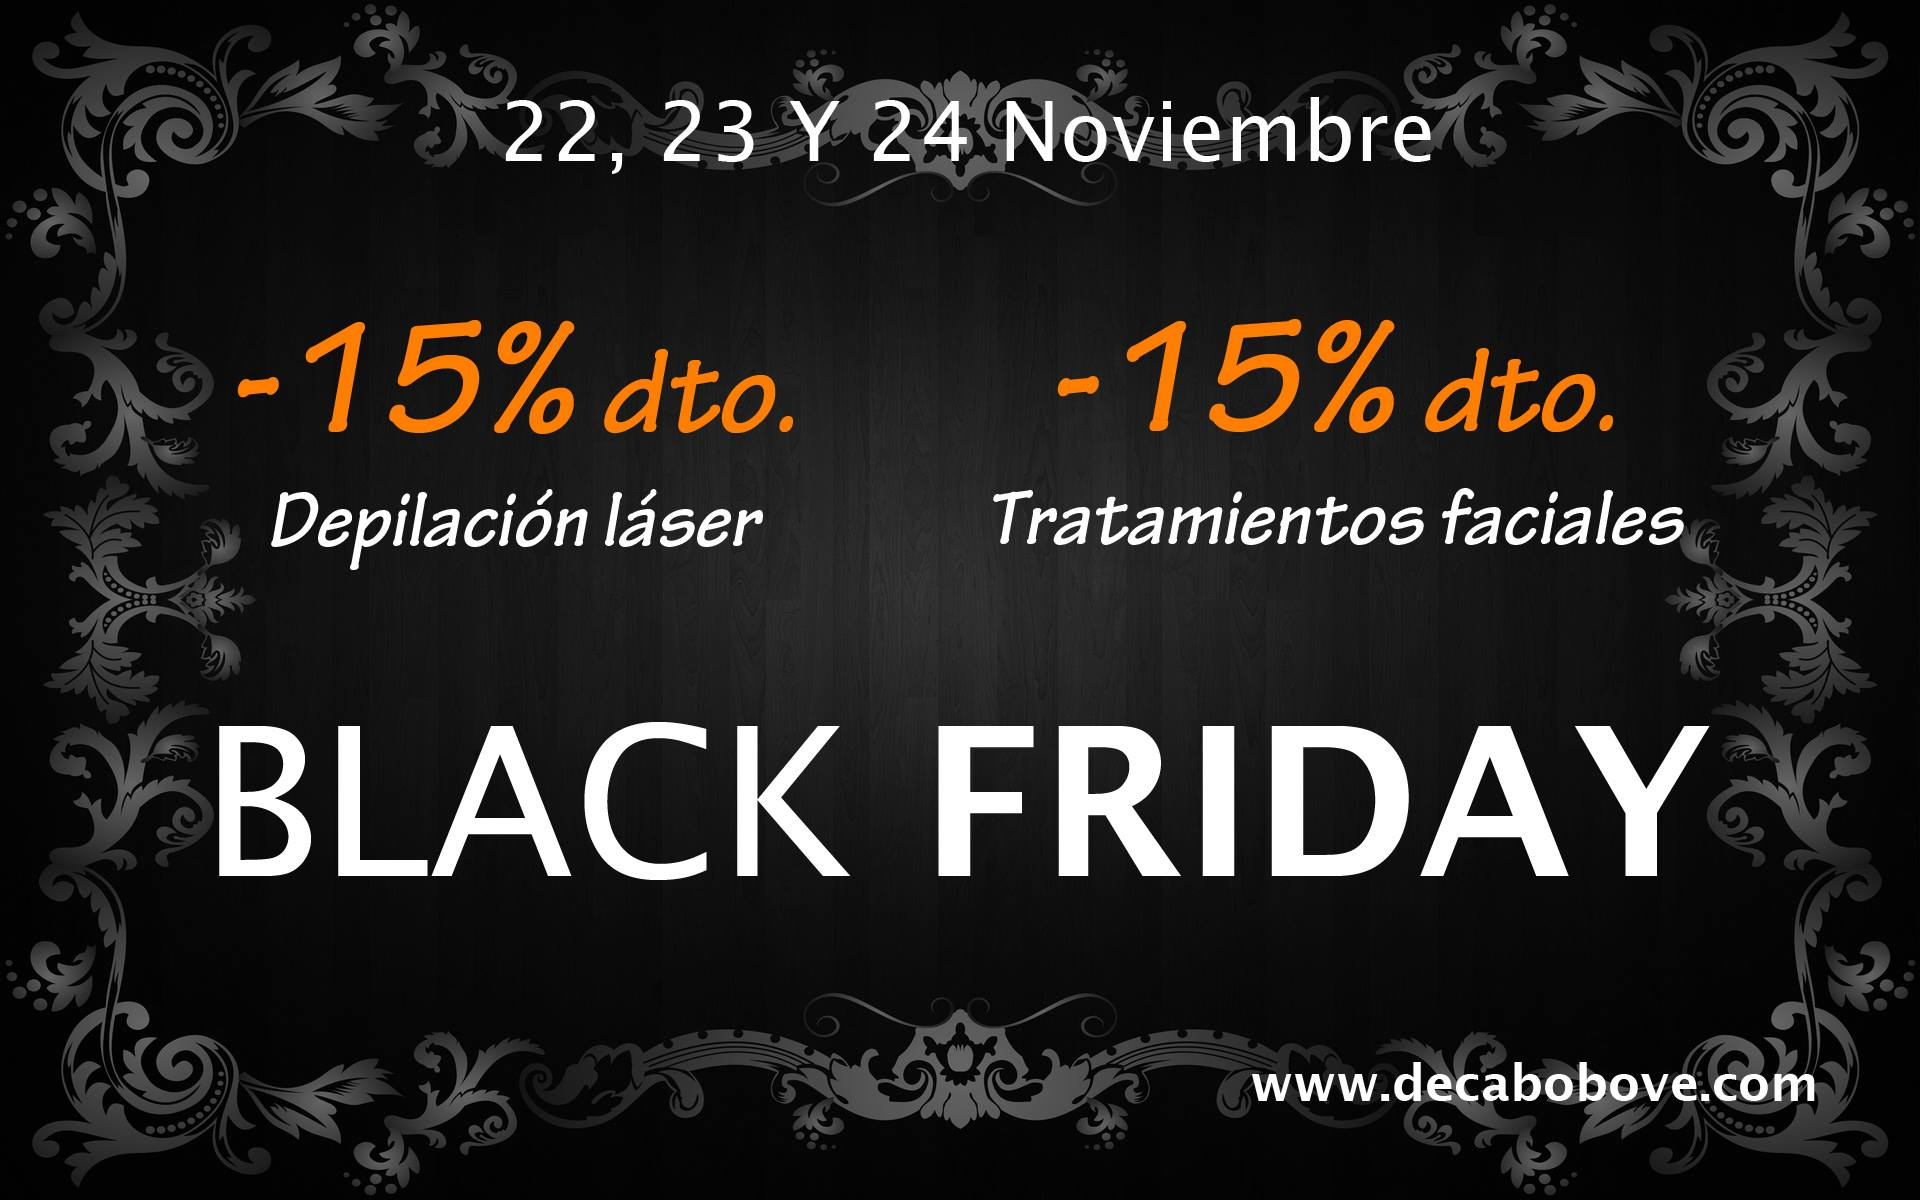 promocion black friday en decabobove.com